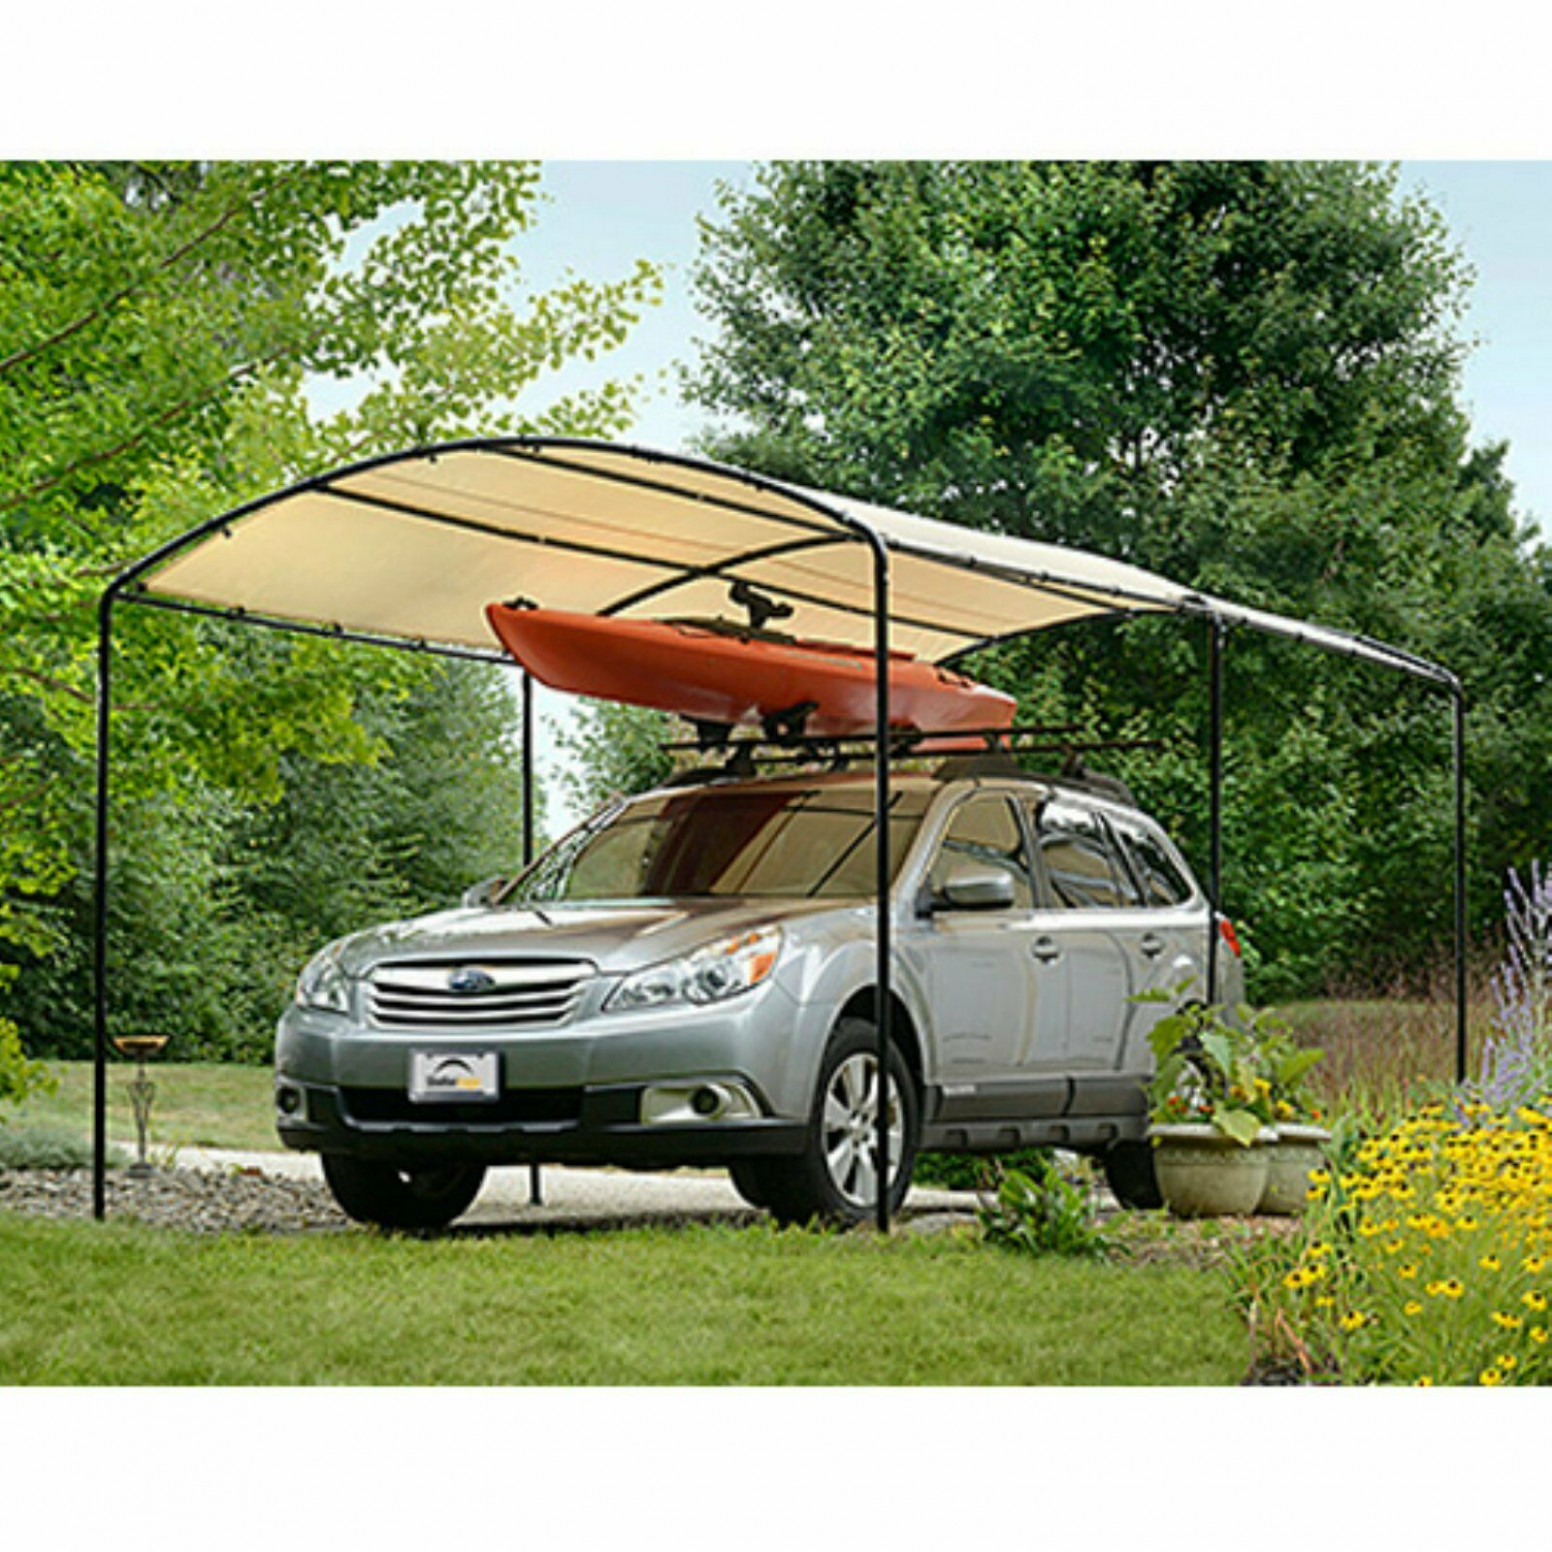 Details About Metal Carports Carport Canopy Kits Garage Steel Frame Car 9 X 9 Boat Tent Cover Carports And Canopies Ltd